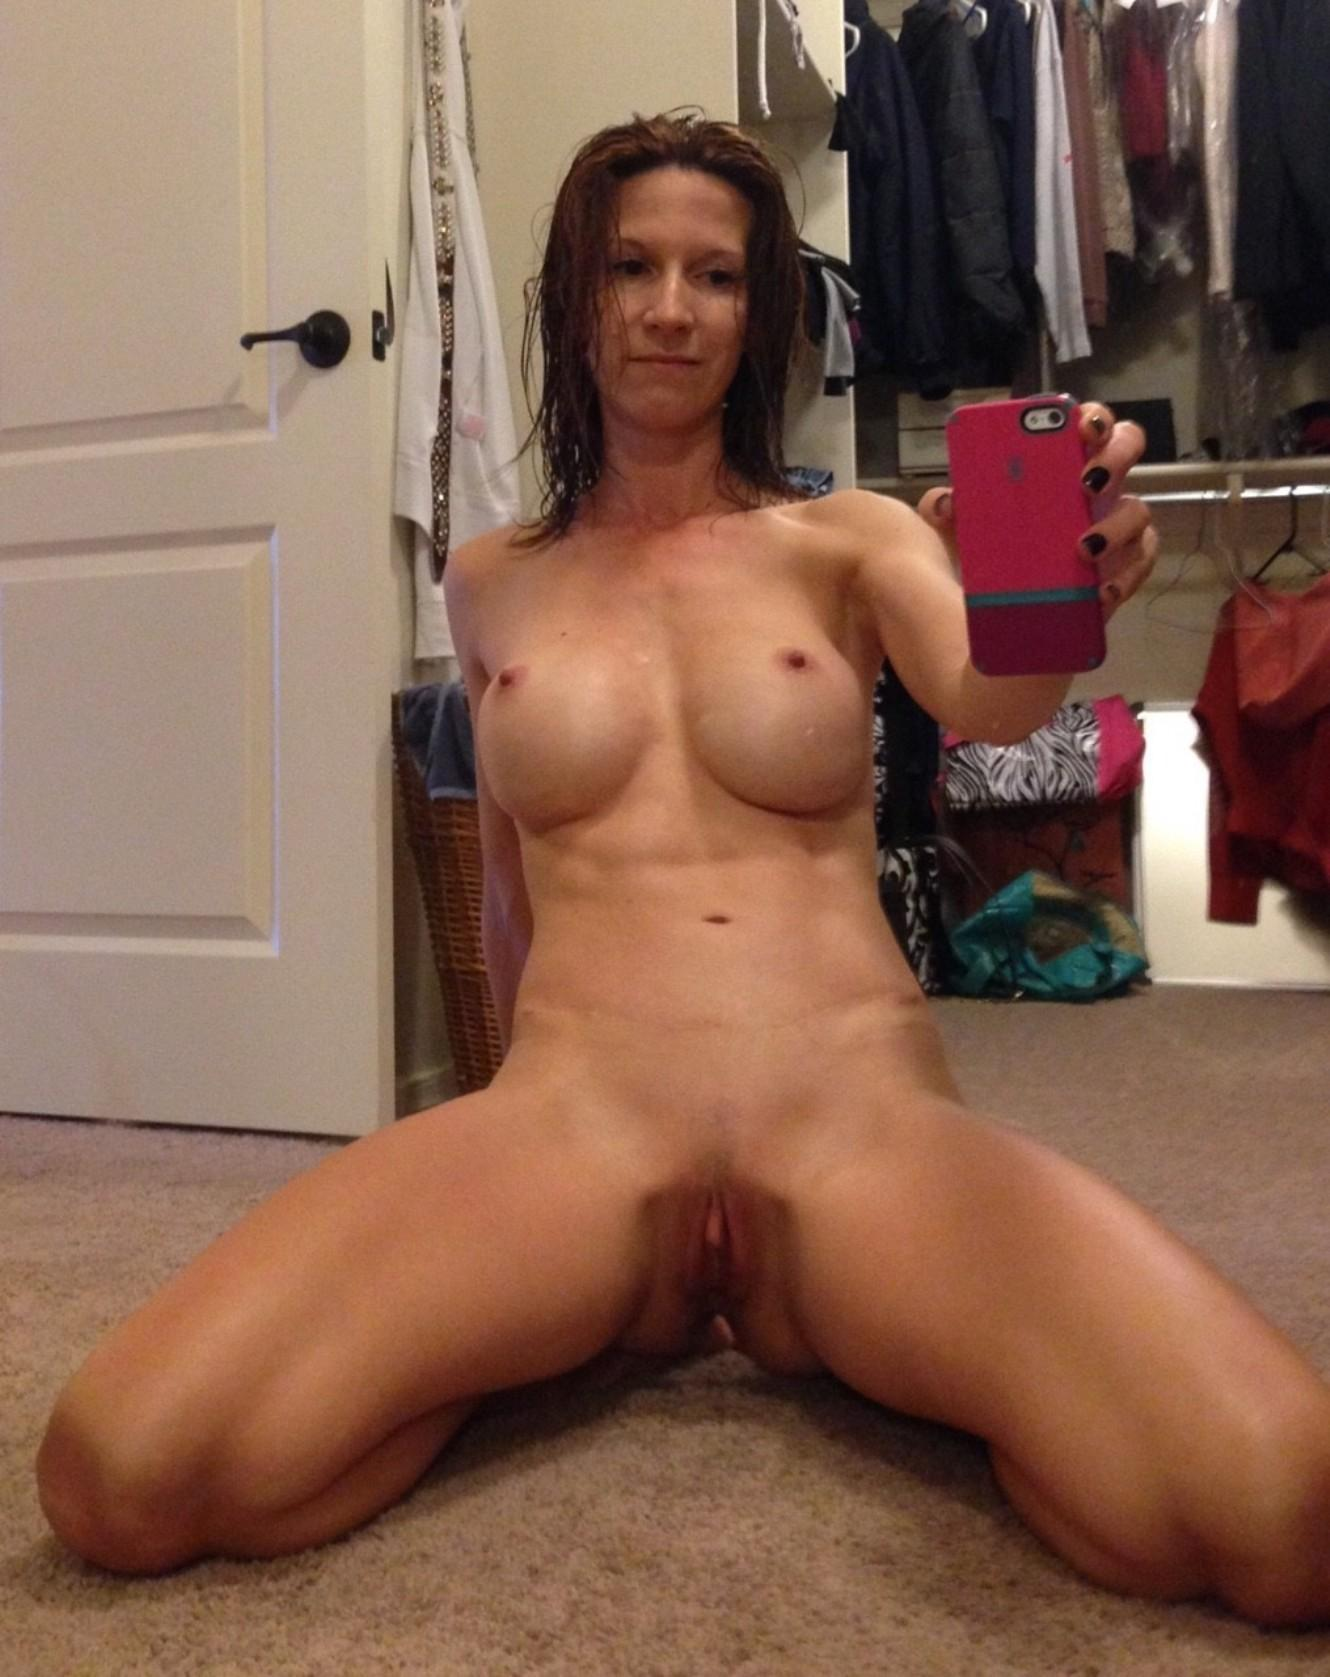 Nude shaved pussy selfie